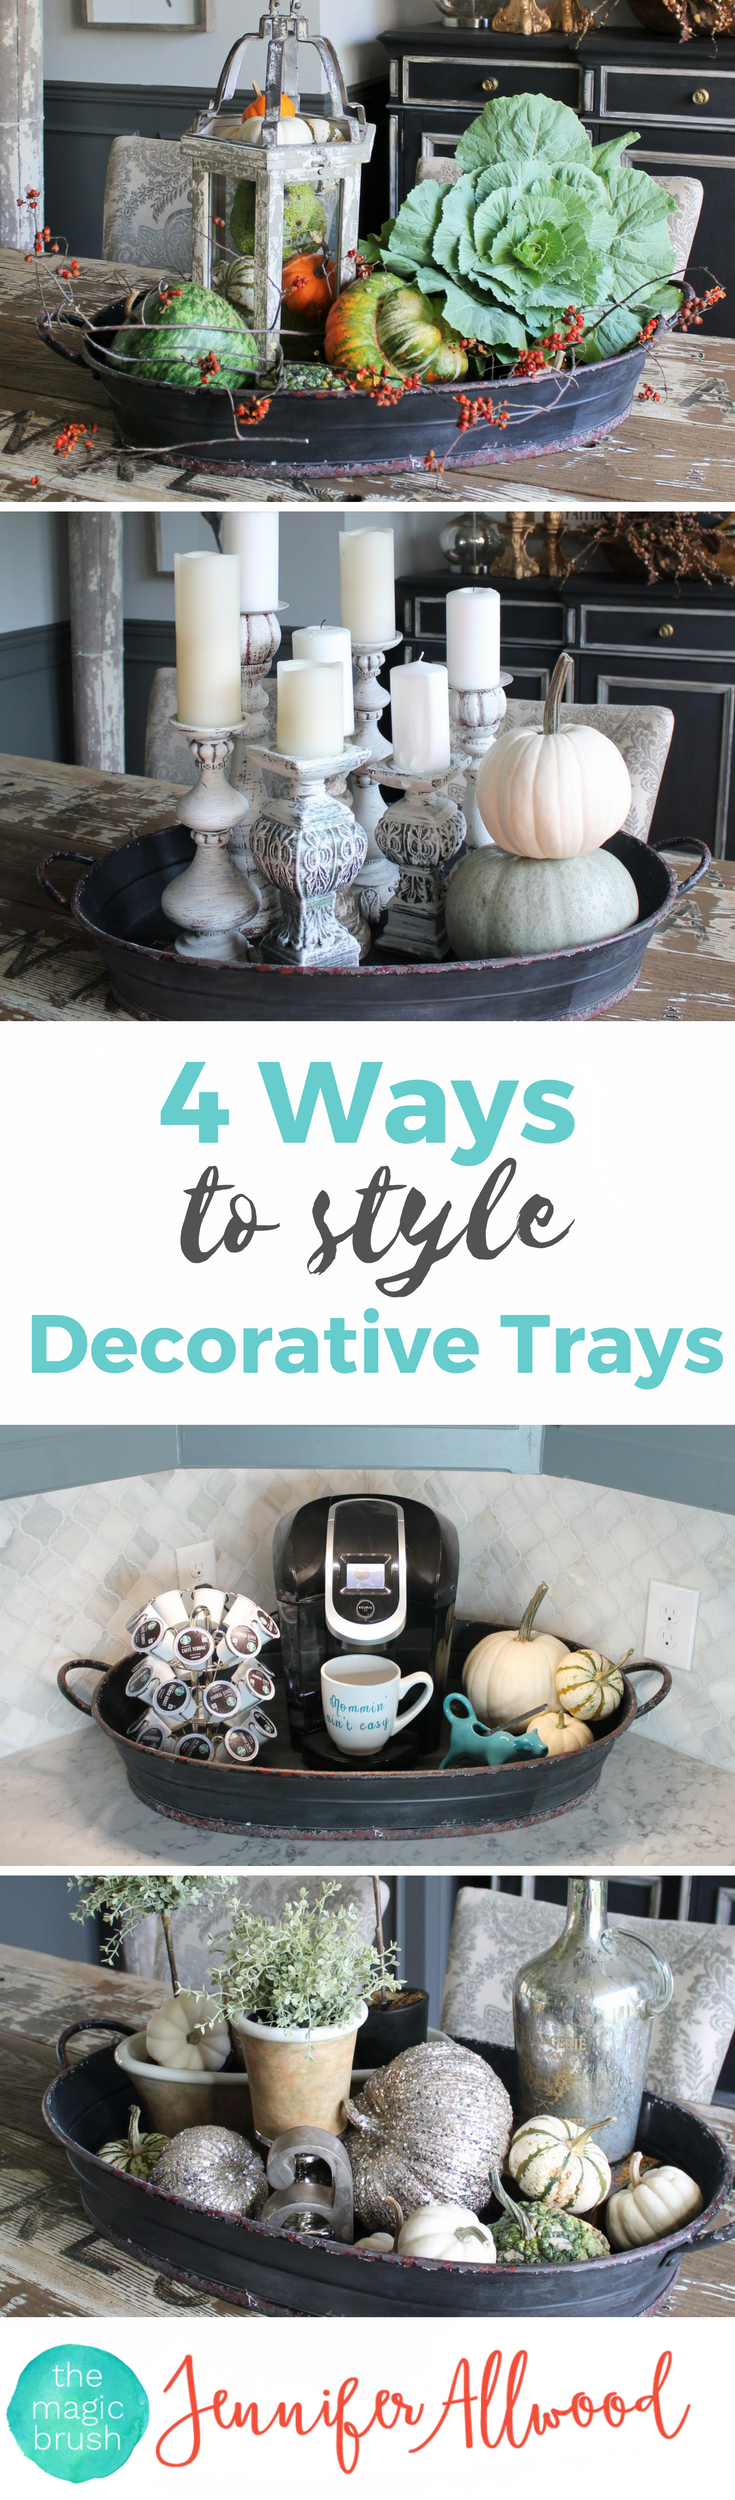 best images about trays decor on pinterest tray styling samus